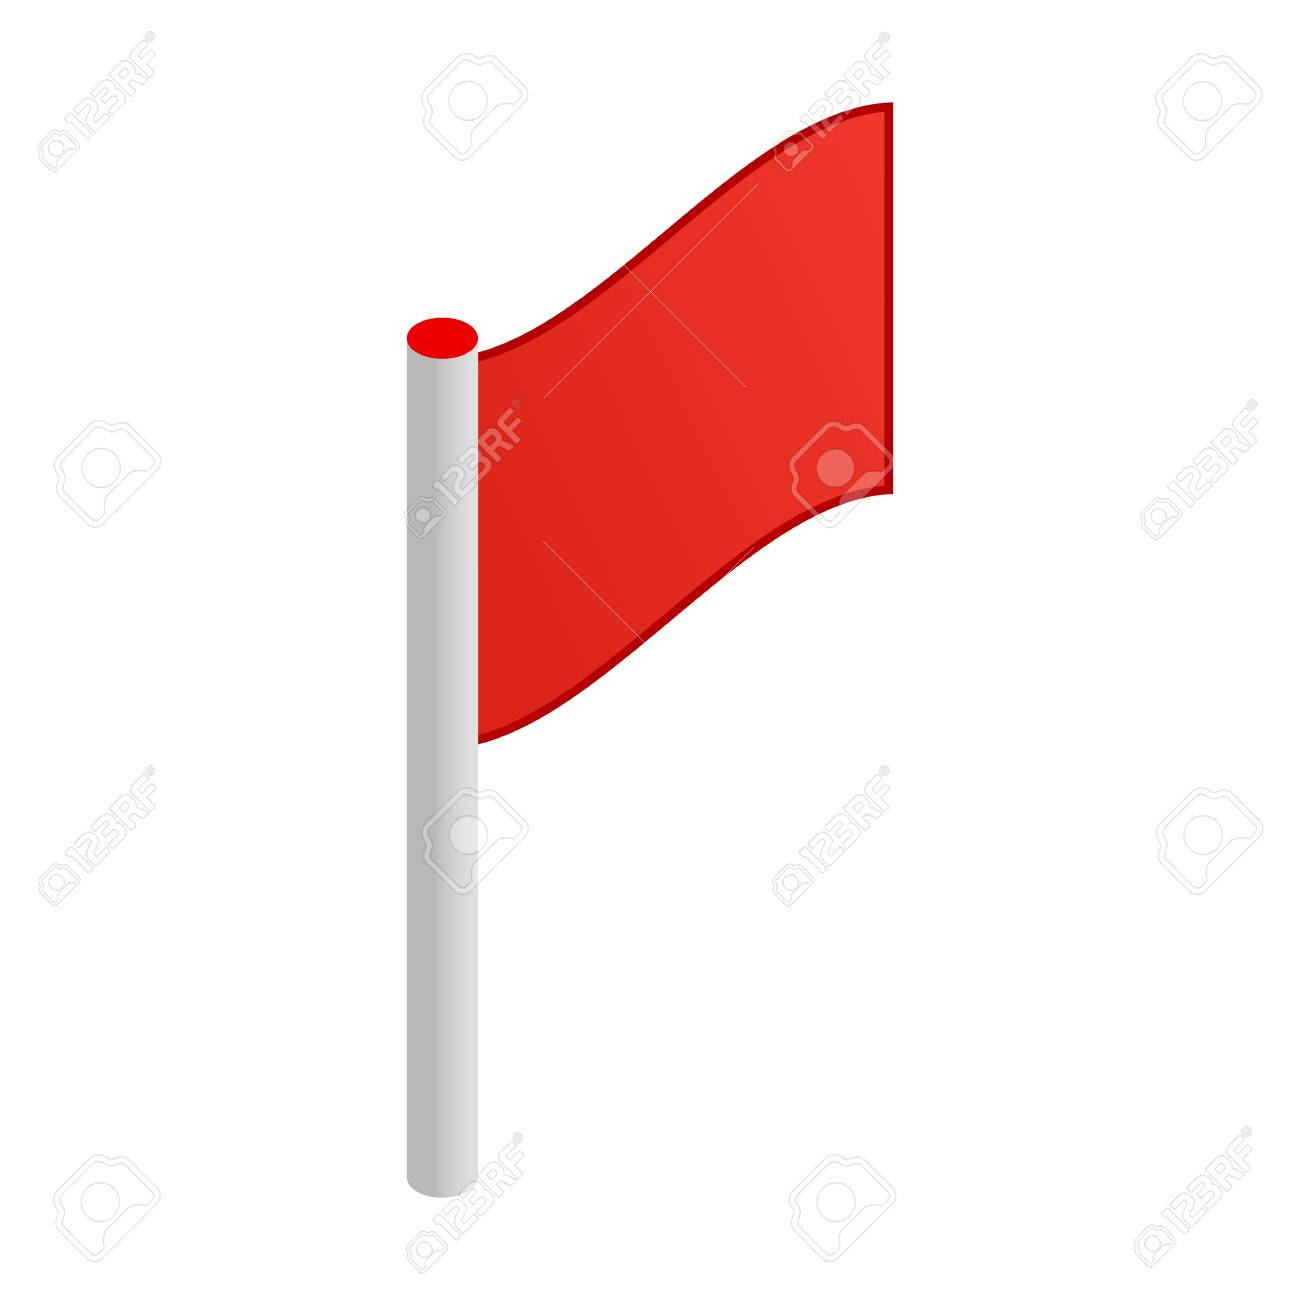 Red flag 3d isometric icon isolated on white background